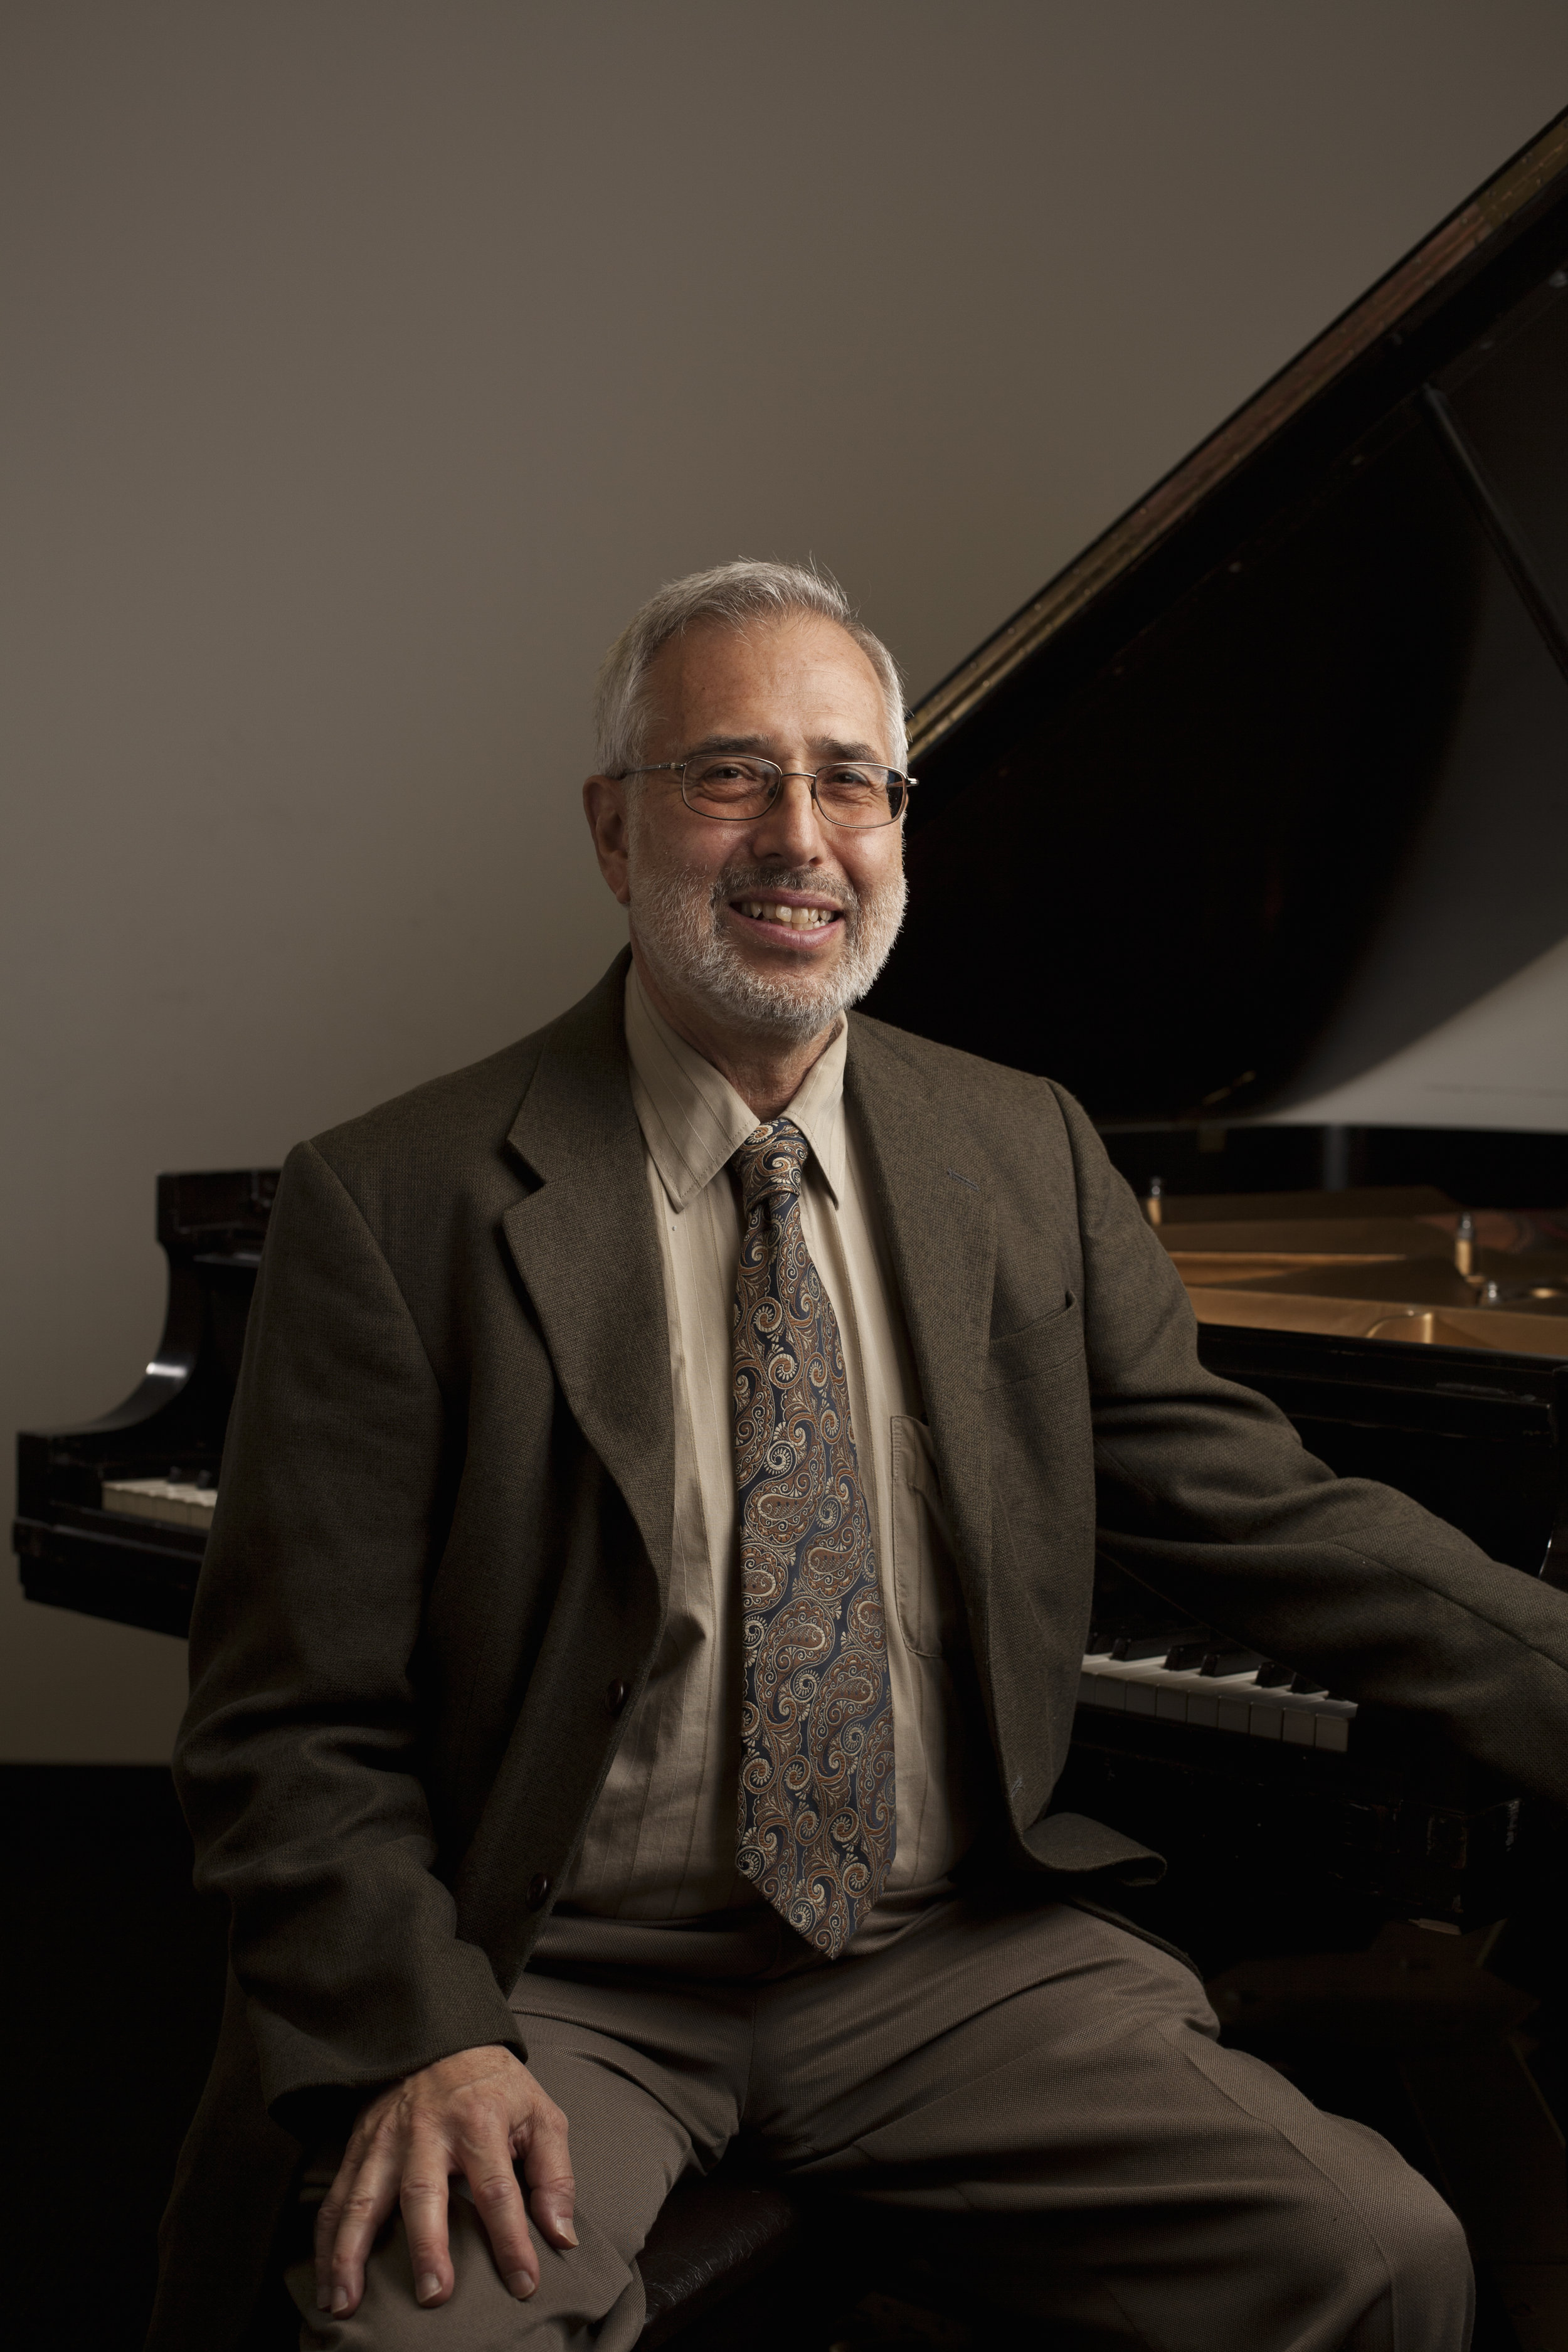 Gerald Rizzer - PIANO, MUSIC THEORYPianist and composer Gerald Rizzer is the founder and artistic director of The Chicago Ensemble, and holds degrees from the University of Chicago and Yale University. Mr. Rizzer teaches piano, theory, and ensemble at Sherwood Community Music School. For many years, he taught music appreciation courses at DePaul. Mr. Rizzer composed the music for several shows performed at Theater Building Chicago. He has recorded two CDs of his short piano pieces